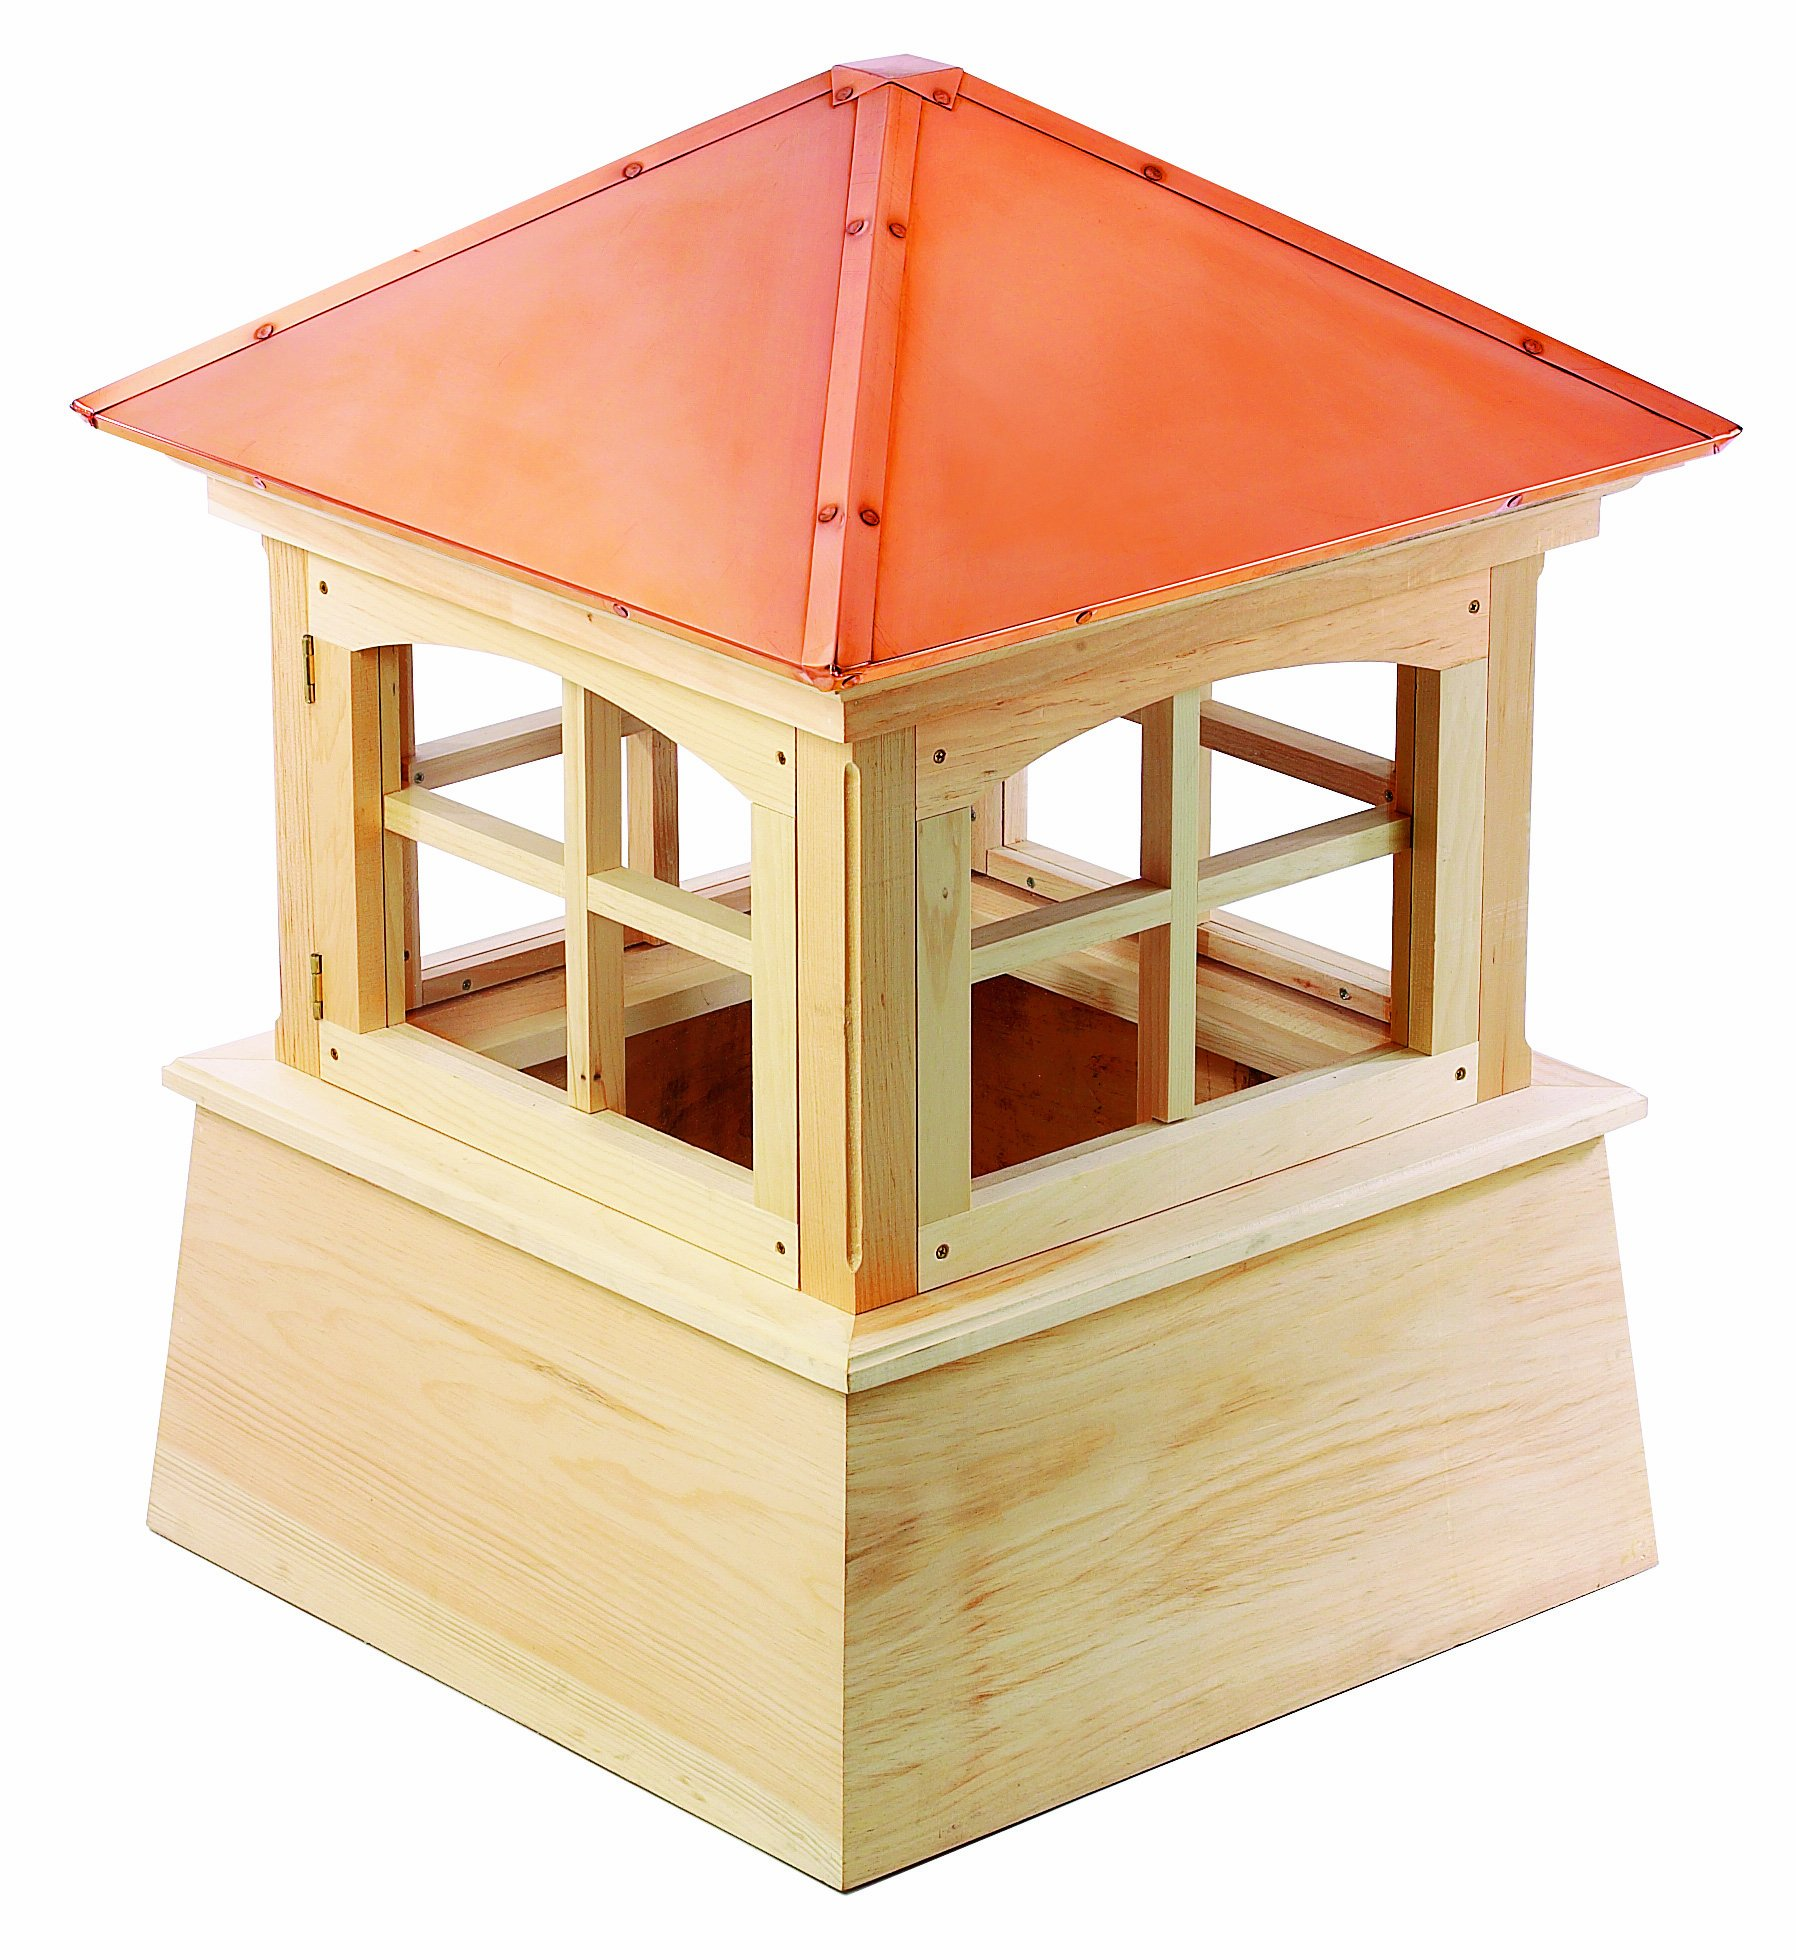 Good Directions Huntington Wood Cupola with Copper Roof, 42'' x 58'' by Good Directions